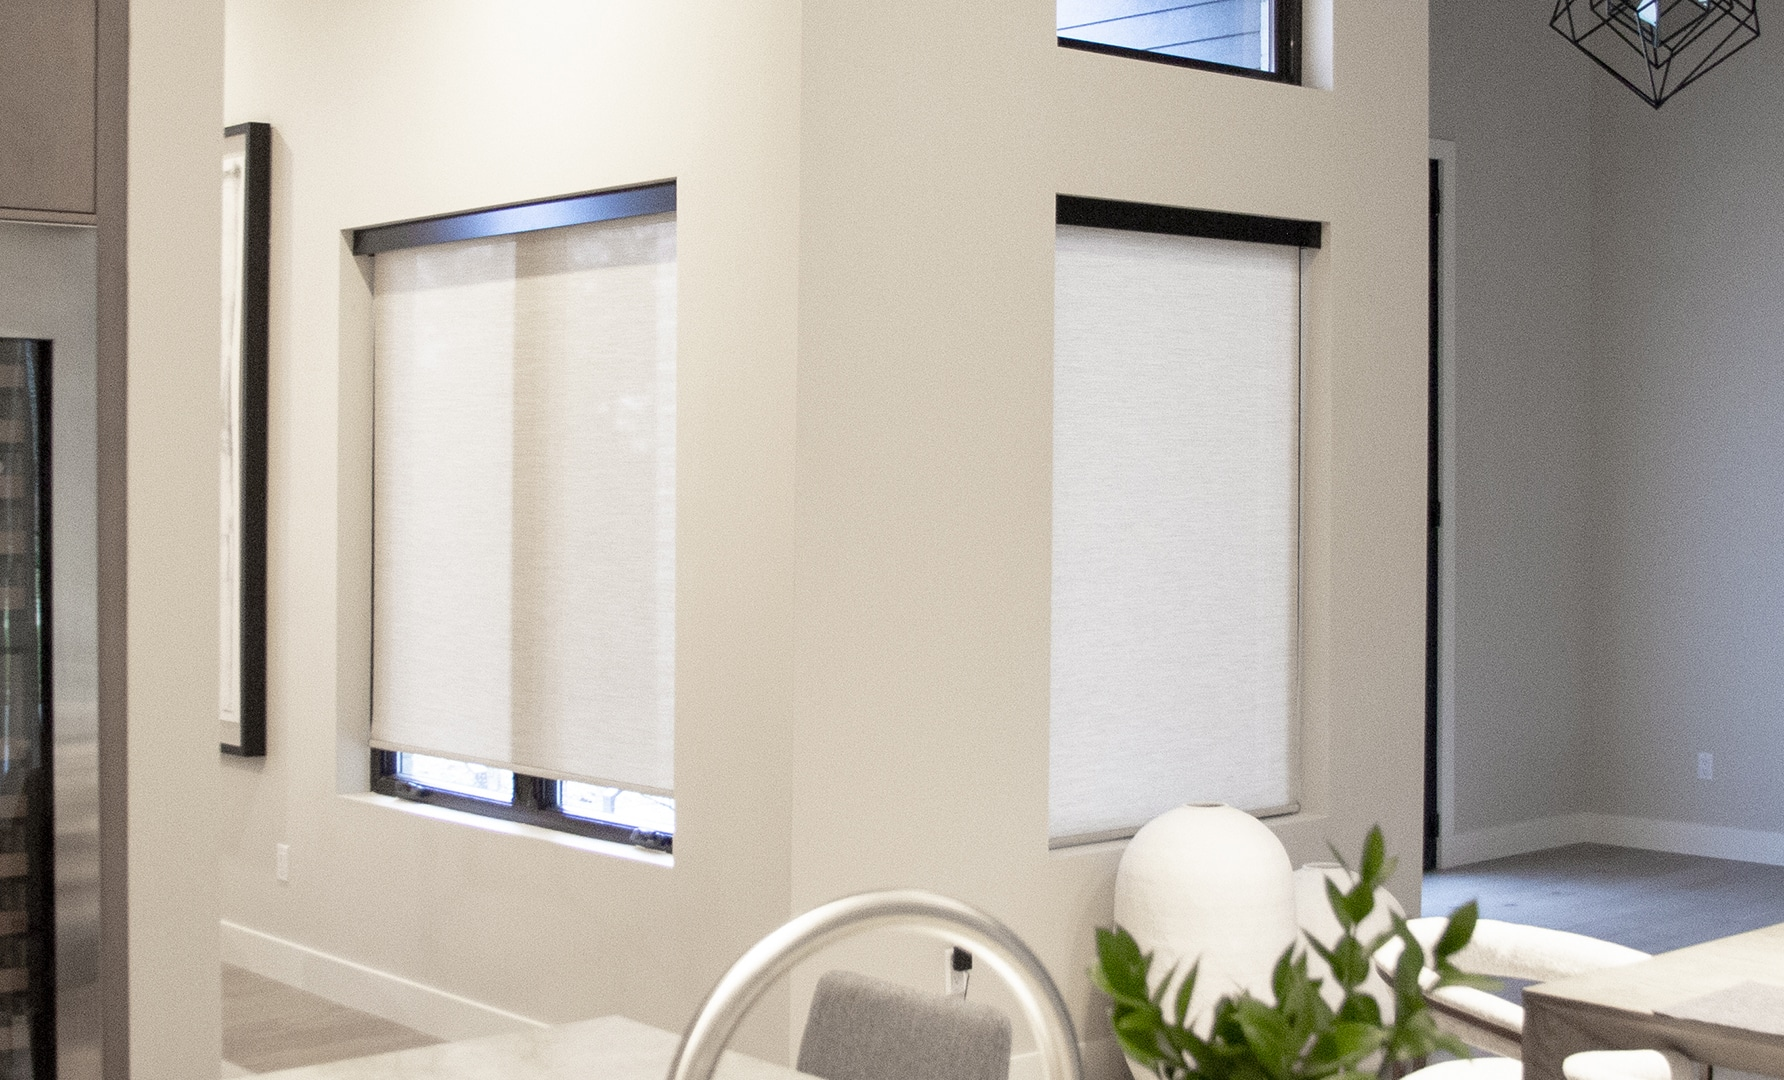 kitchen with two windows that are covered by white interior roller shades